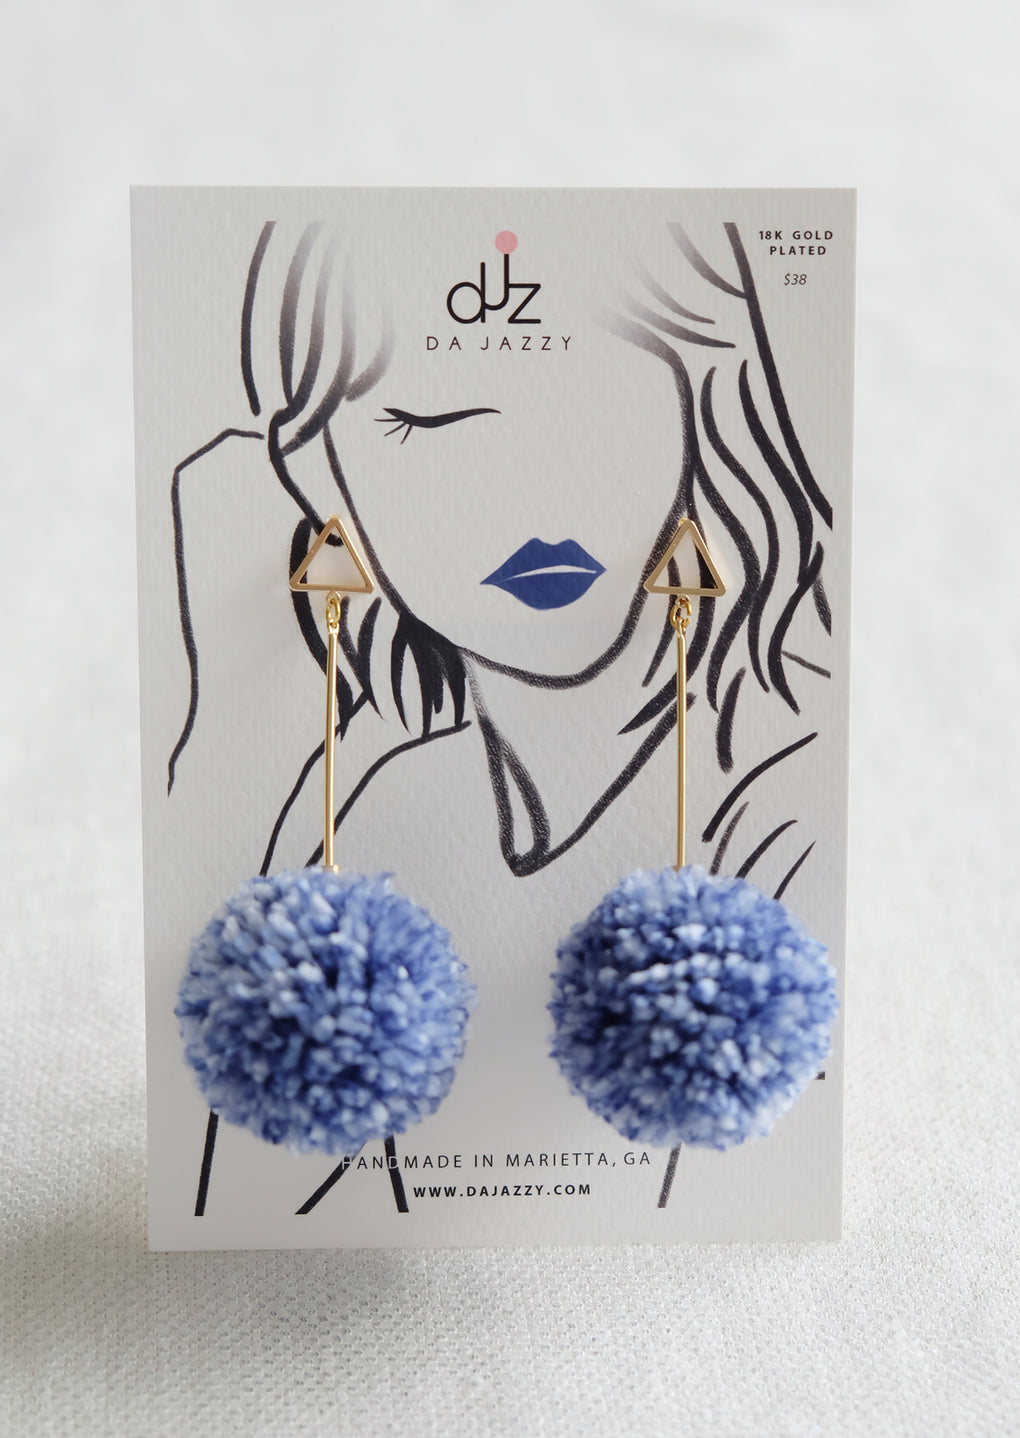 SHIBORI NAVY WHITE LARGE POMPOM 18K GOLD-PLATED DROP EARRINGS